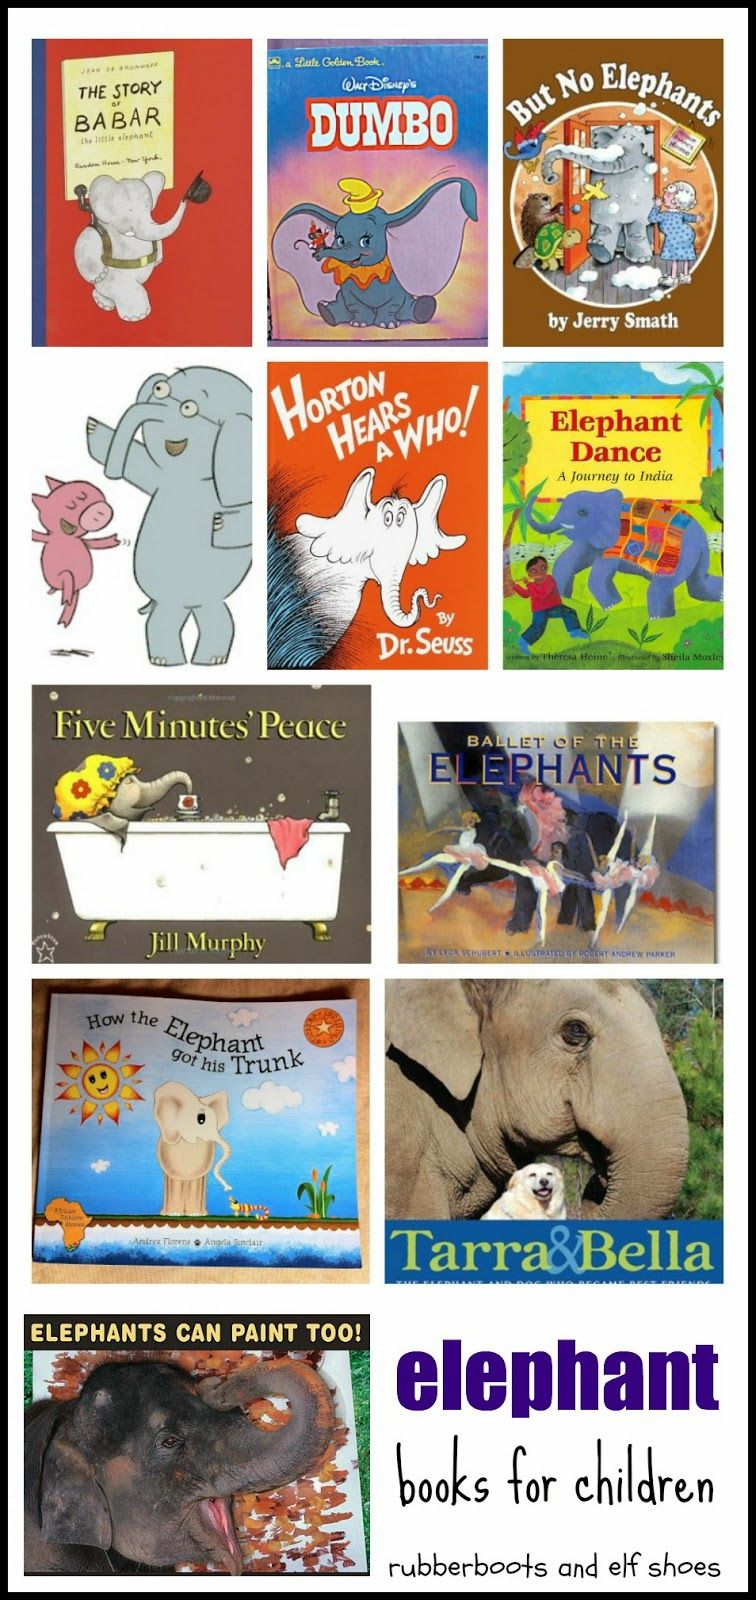 elephant books to enjoy from rubber boots and elf shoes | rubberboots and elf shoes posts